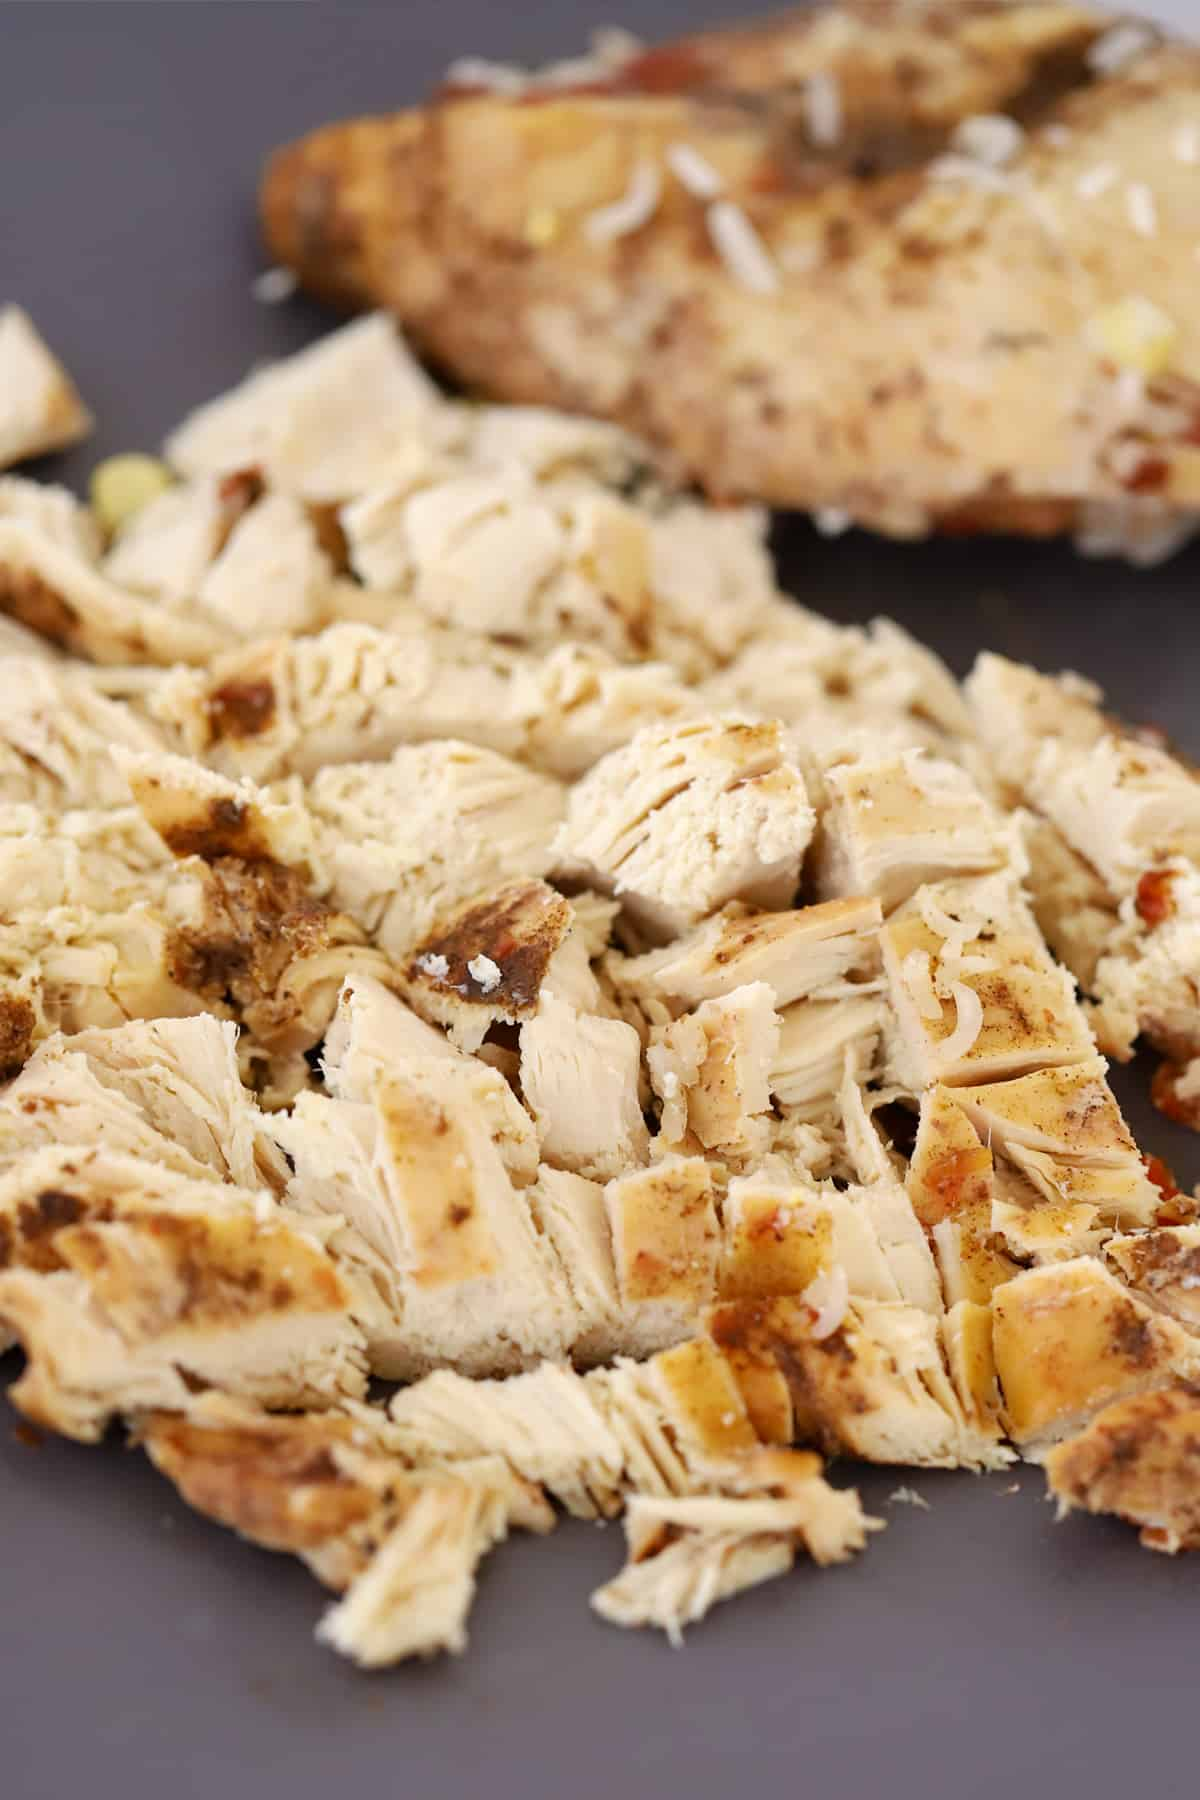 Diced, cooked chicken on a cutting board.